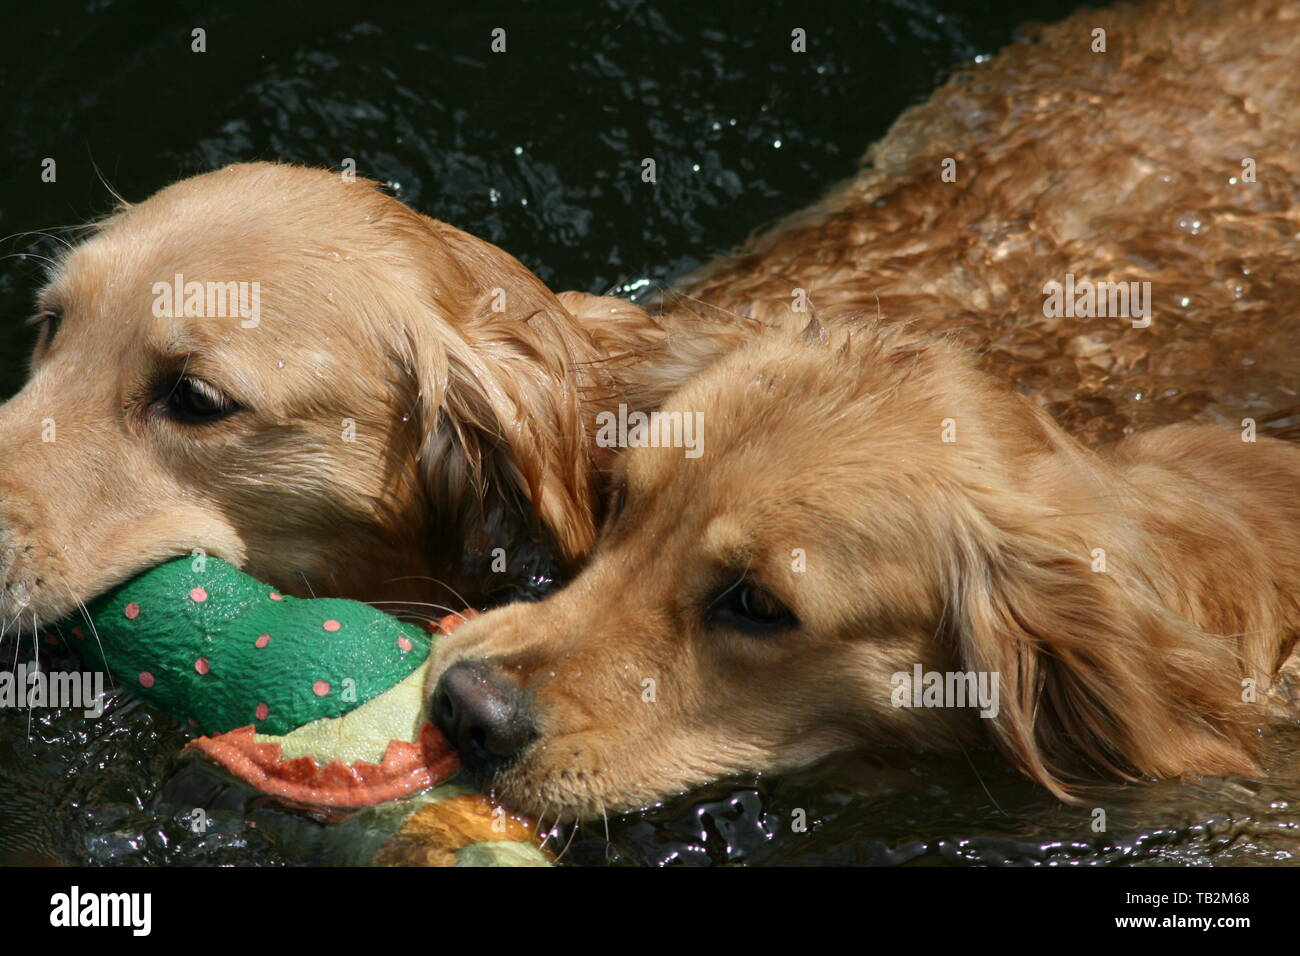 Golden Retrievers Swimming with toy in their mouths in a Pond - Stock Image